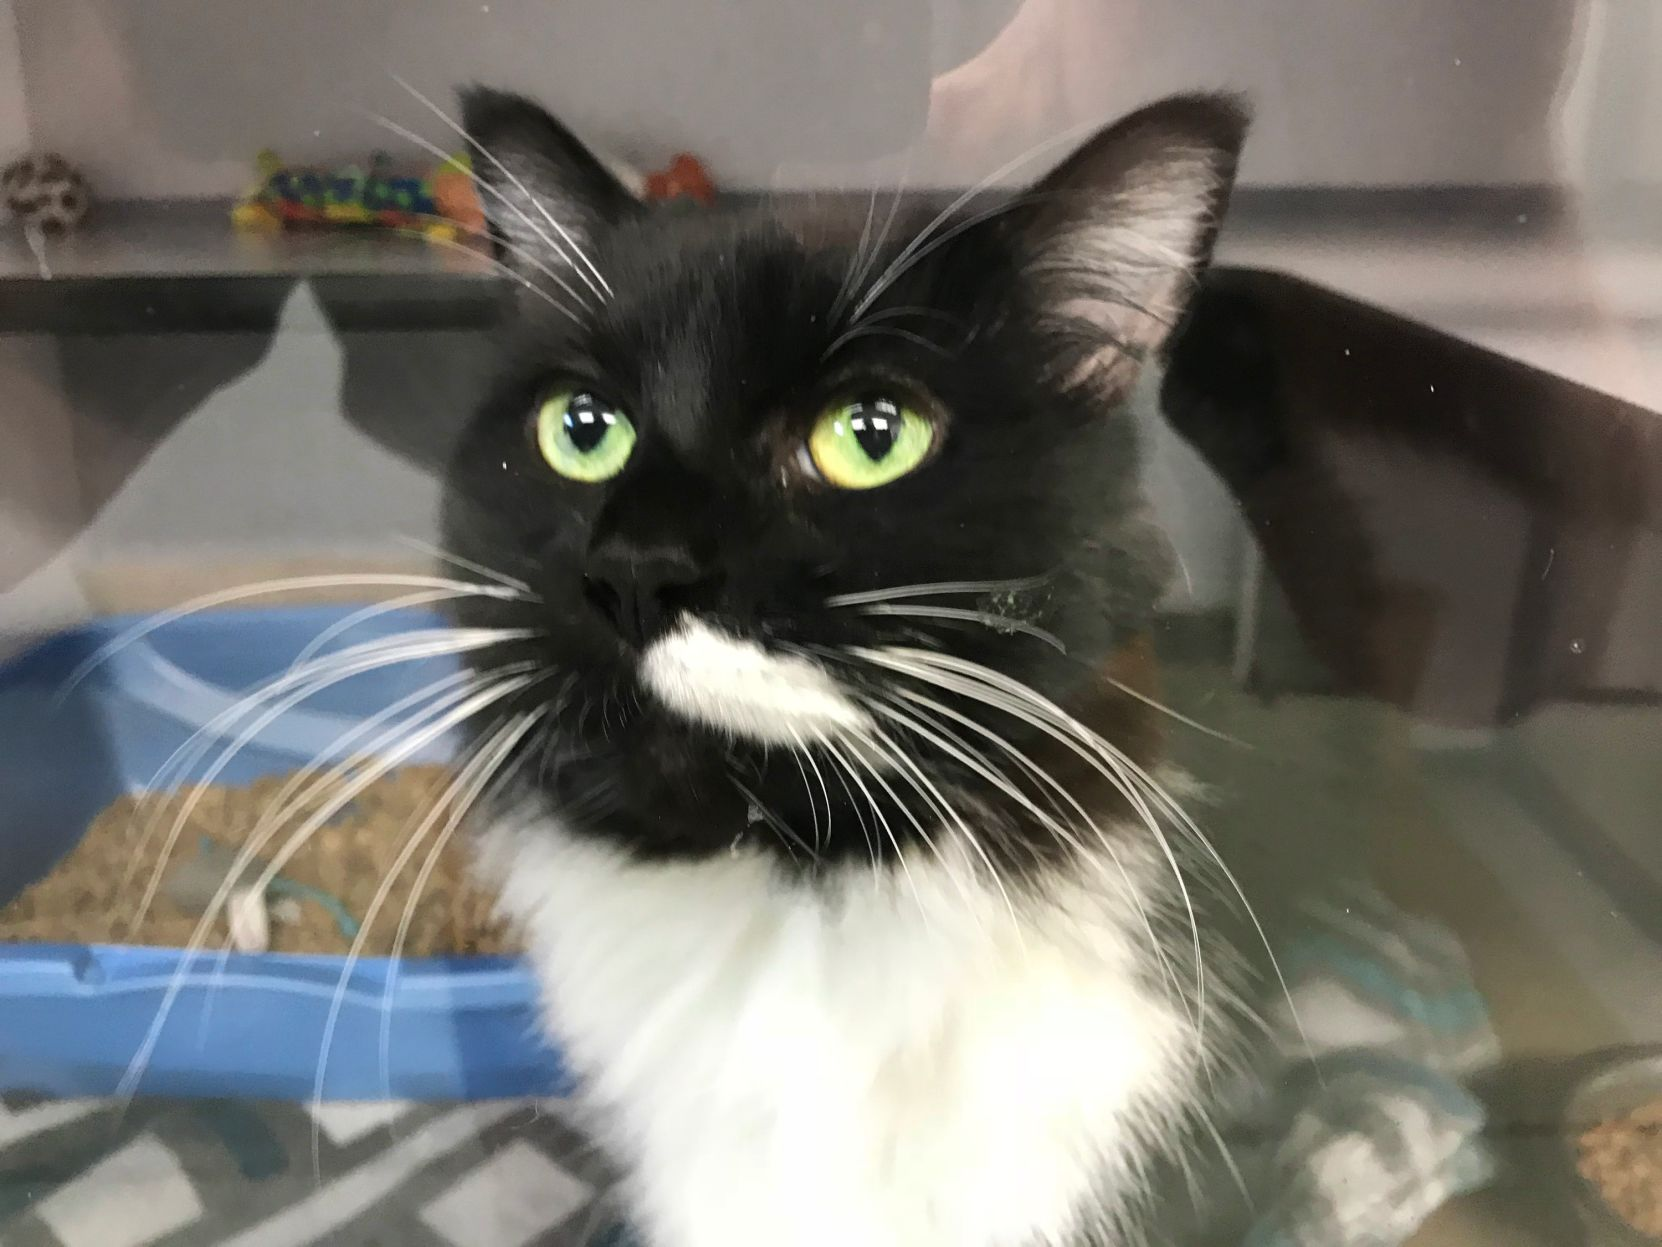 Animal shelter encouraging locals to adopt adult cats